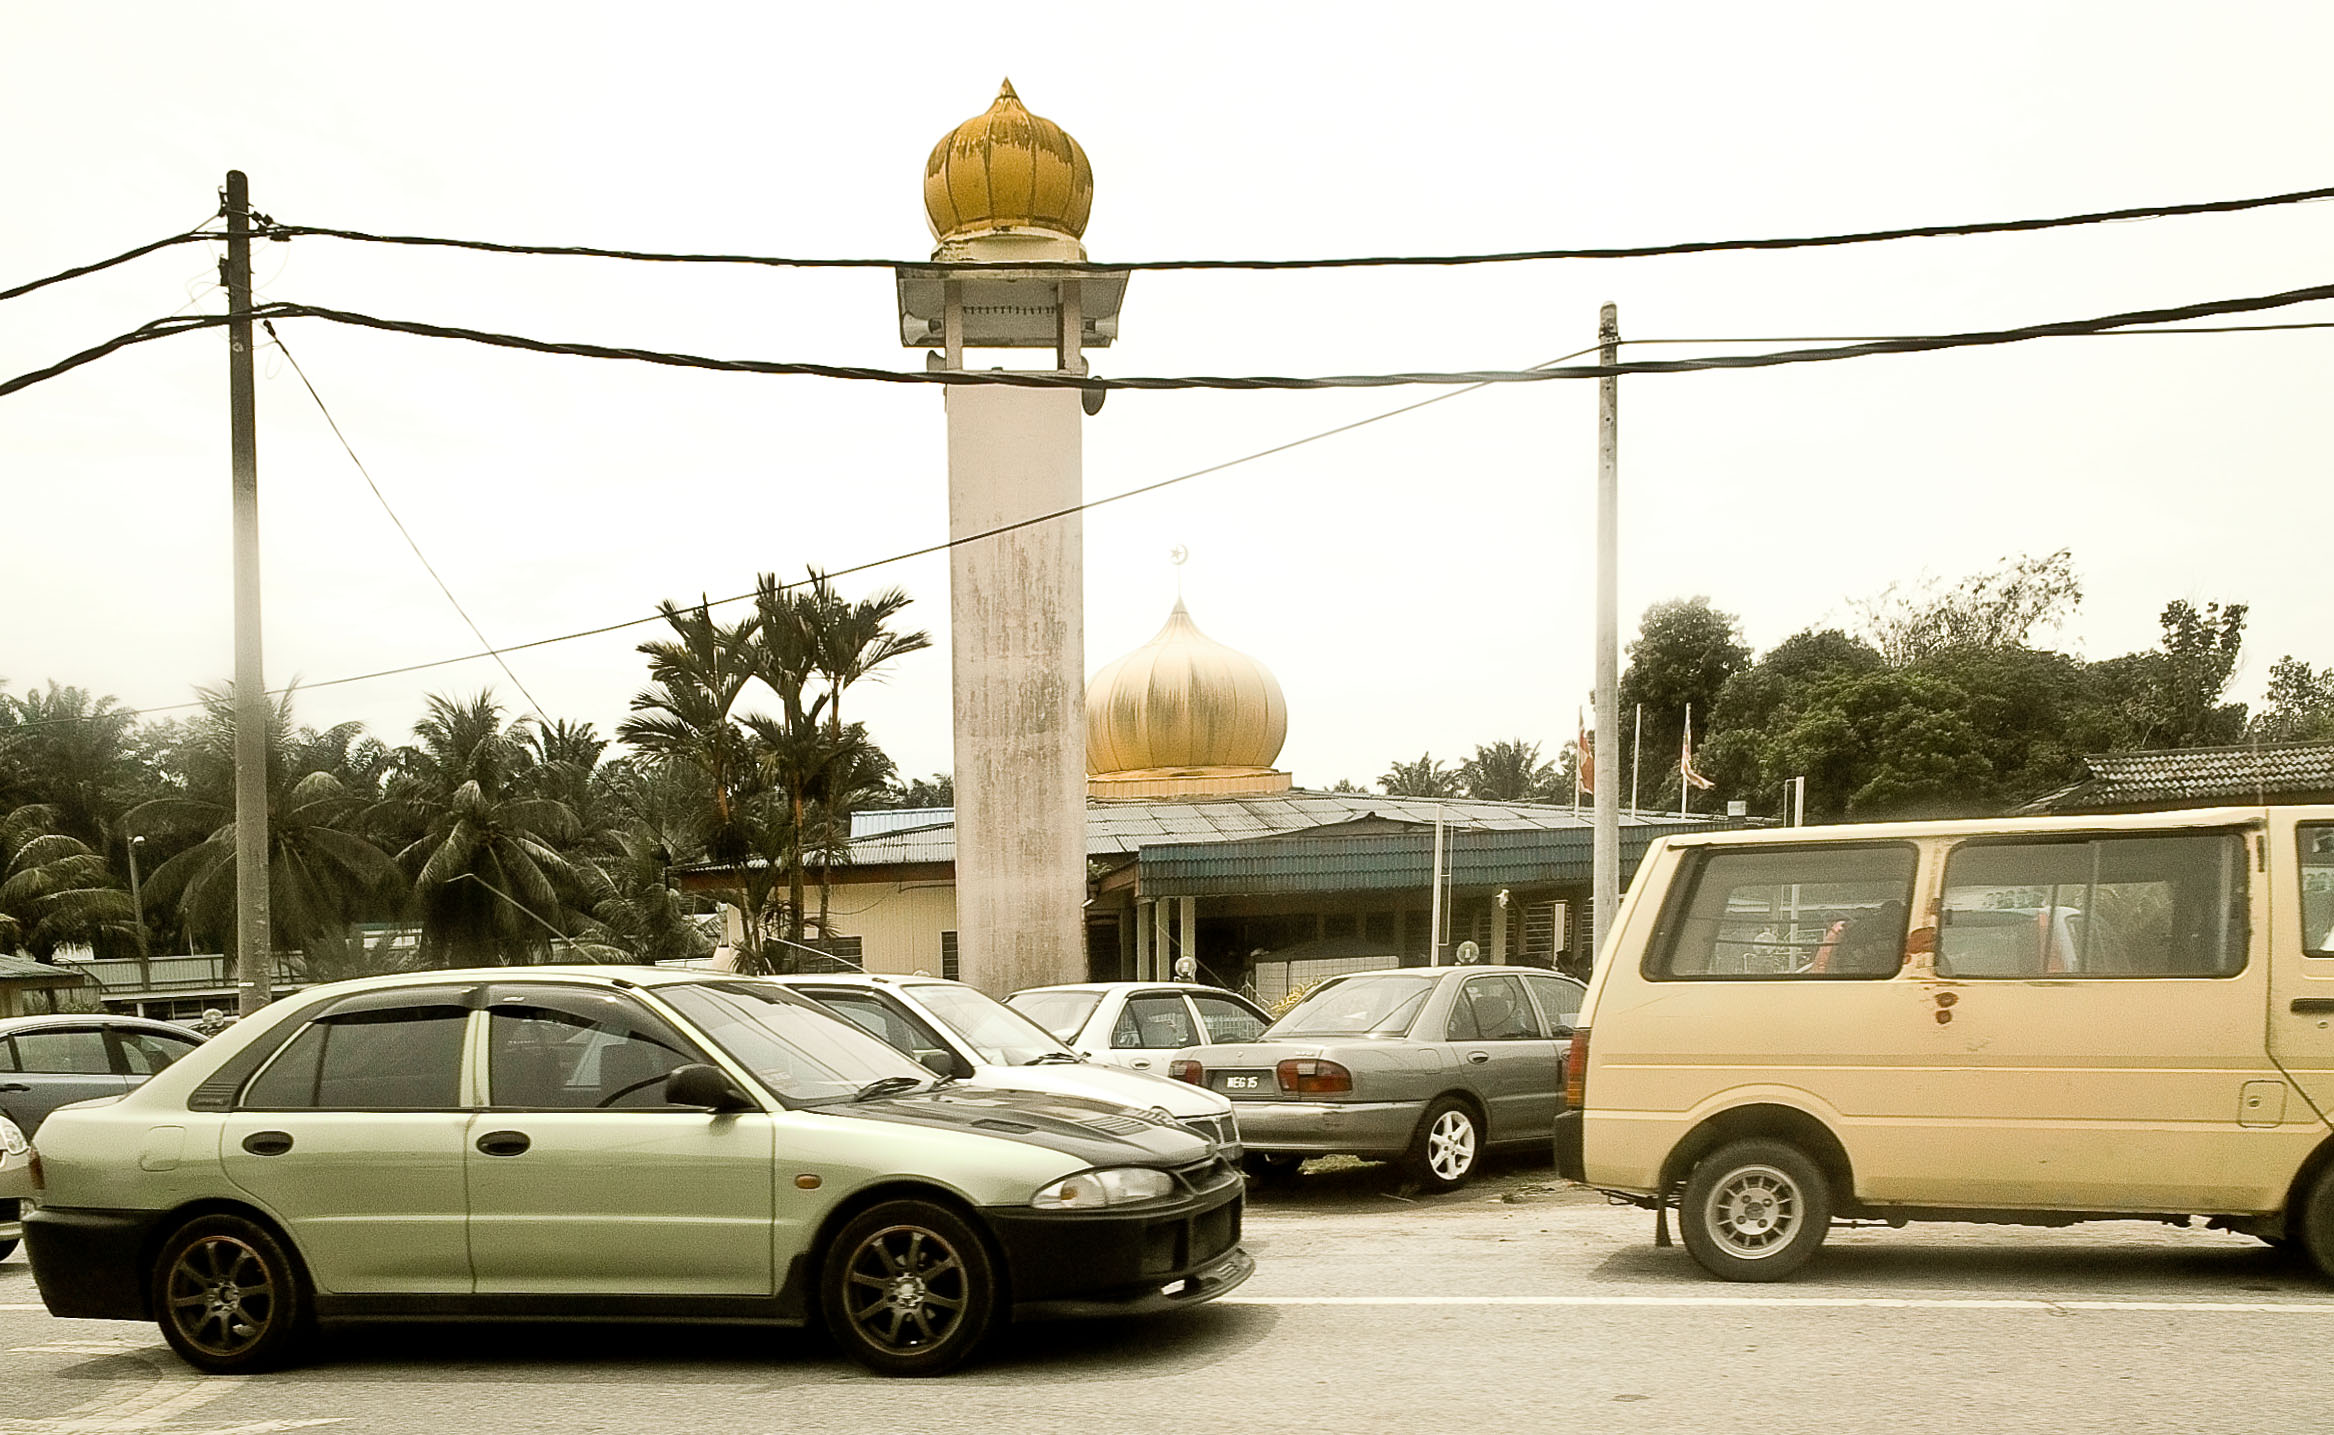 cars parked at Friday prayers in front of a mosque